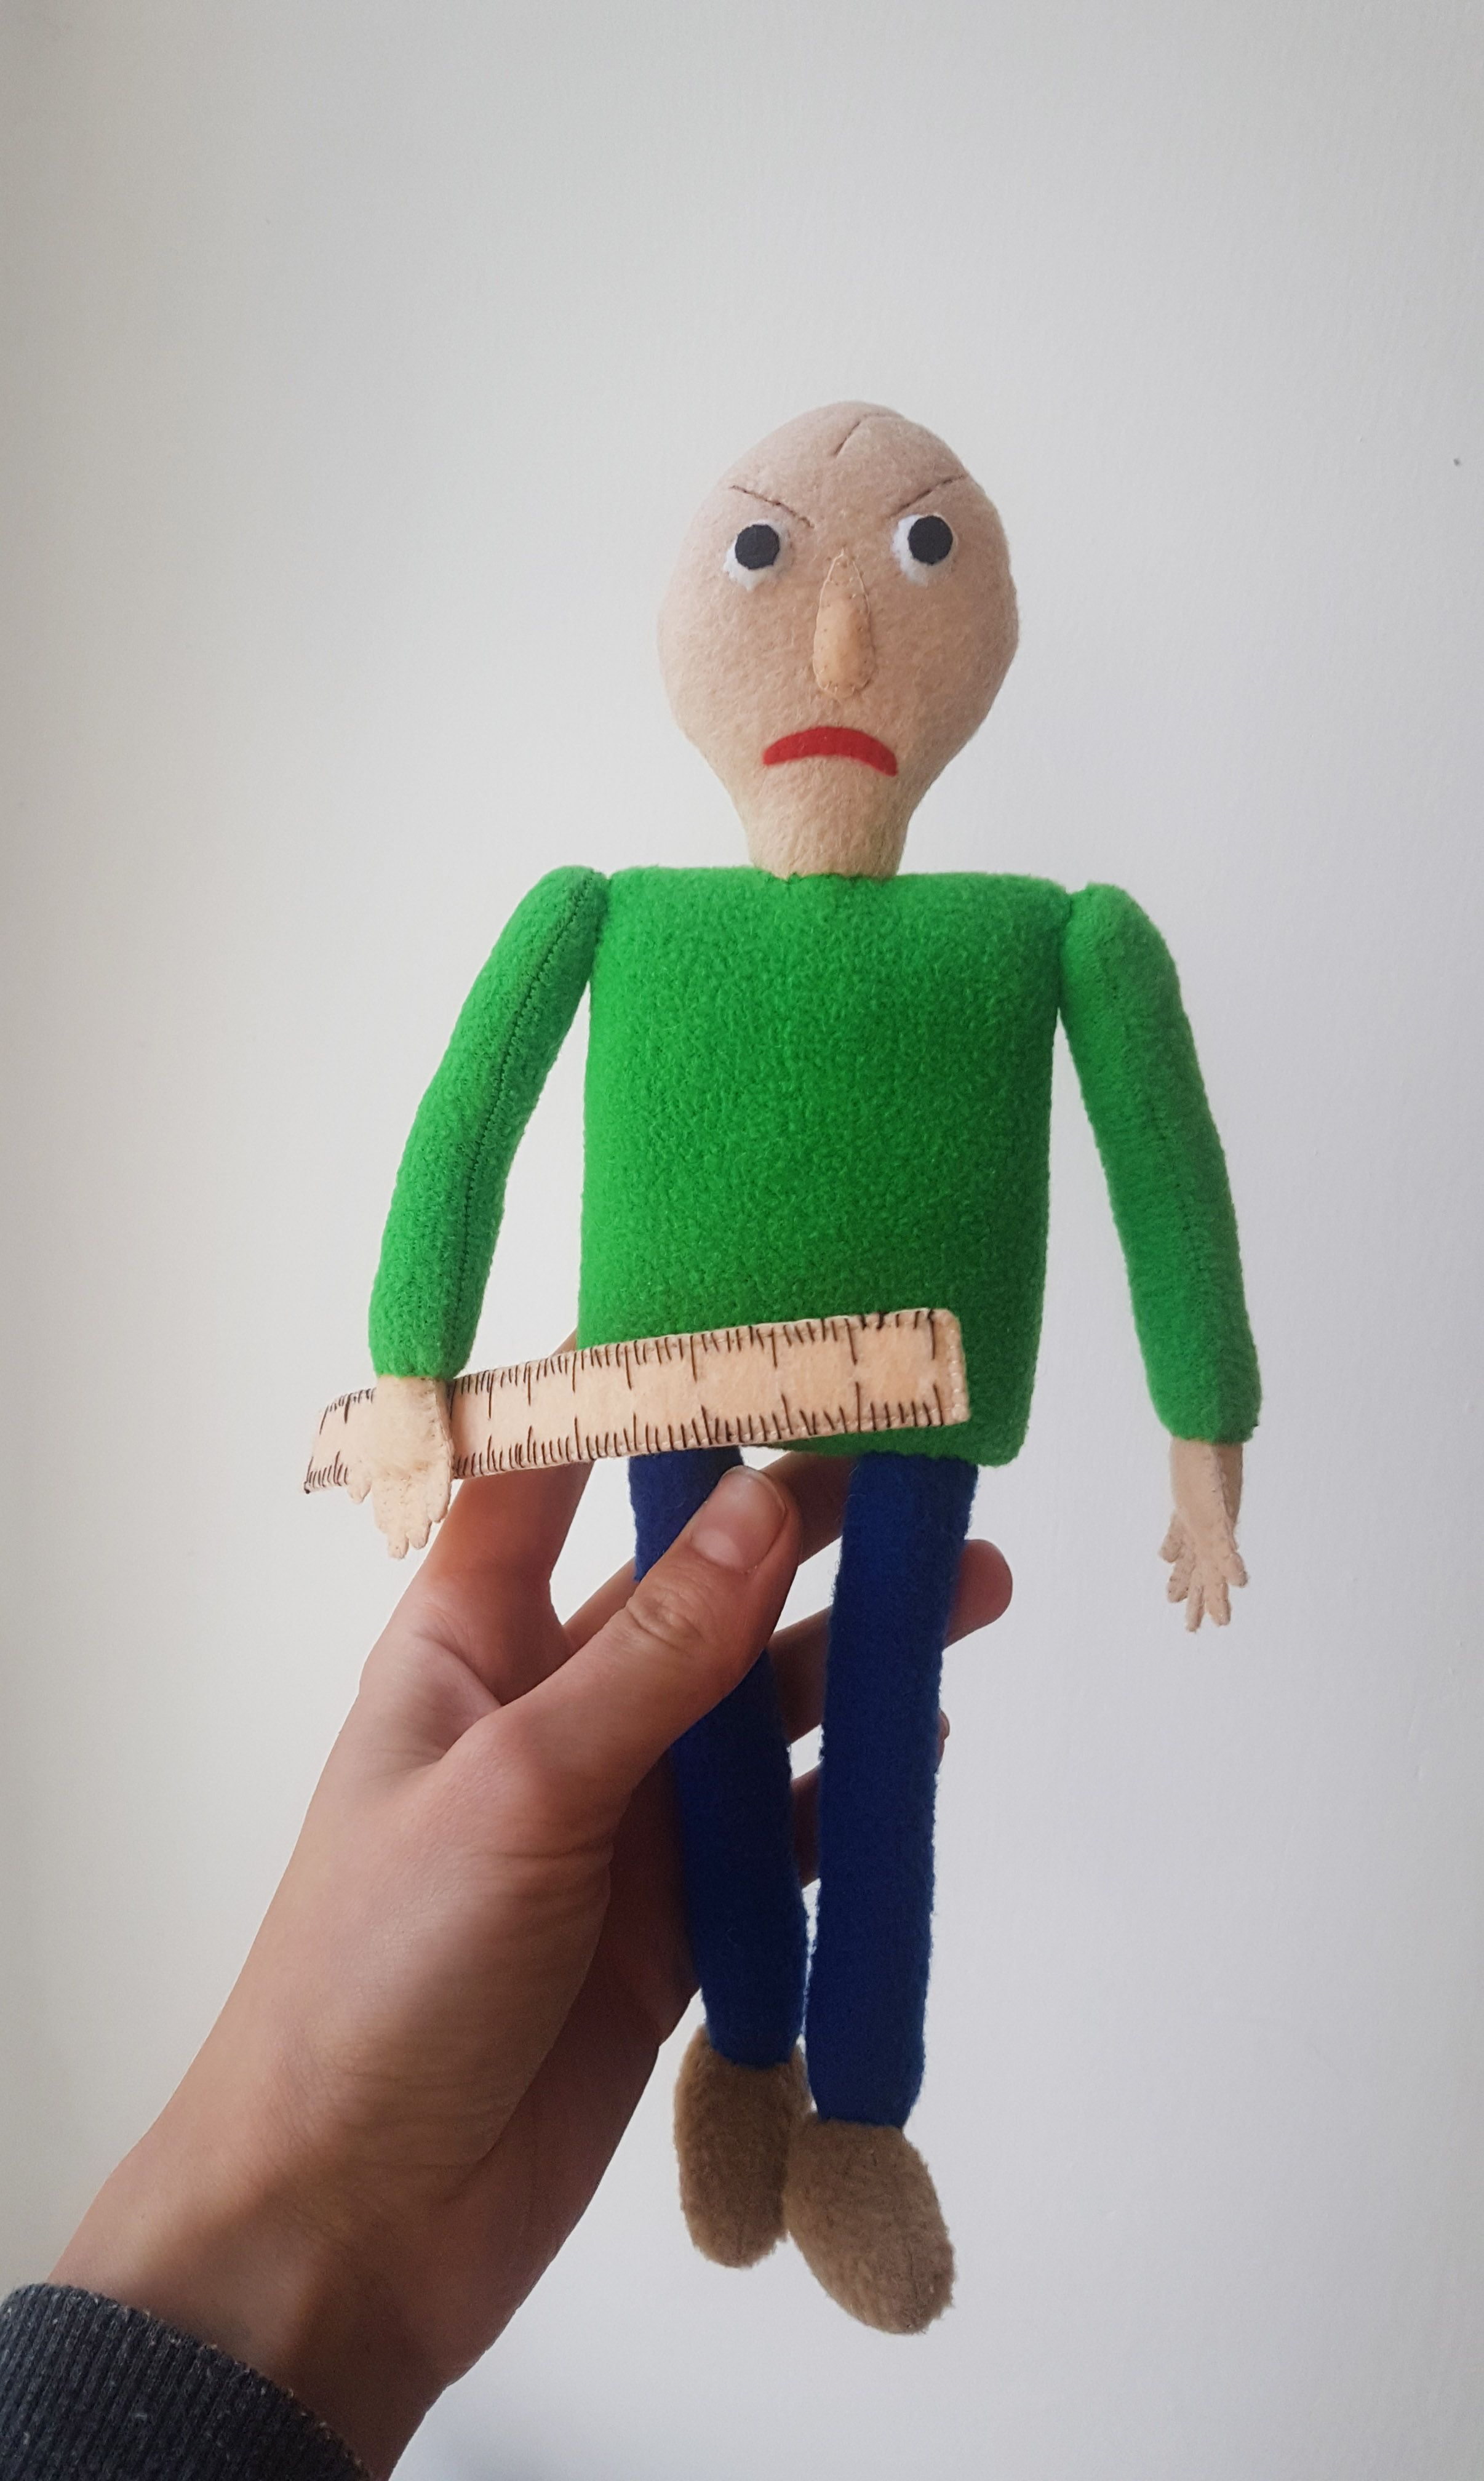 Baldi S Plush Baldi S Basics In Education And Learning Inspired Plush Handmade Soft Toy Two Sizes With Images Handmade Soft Toys